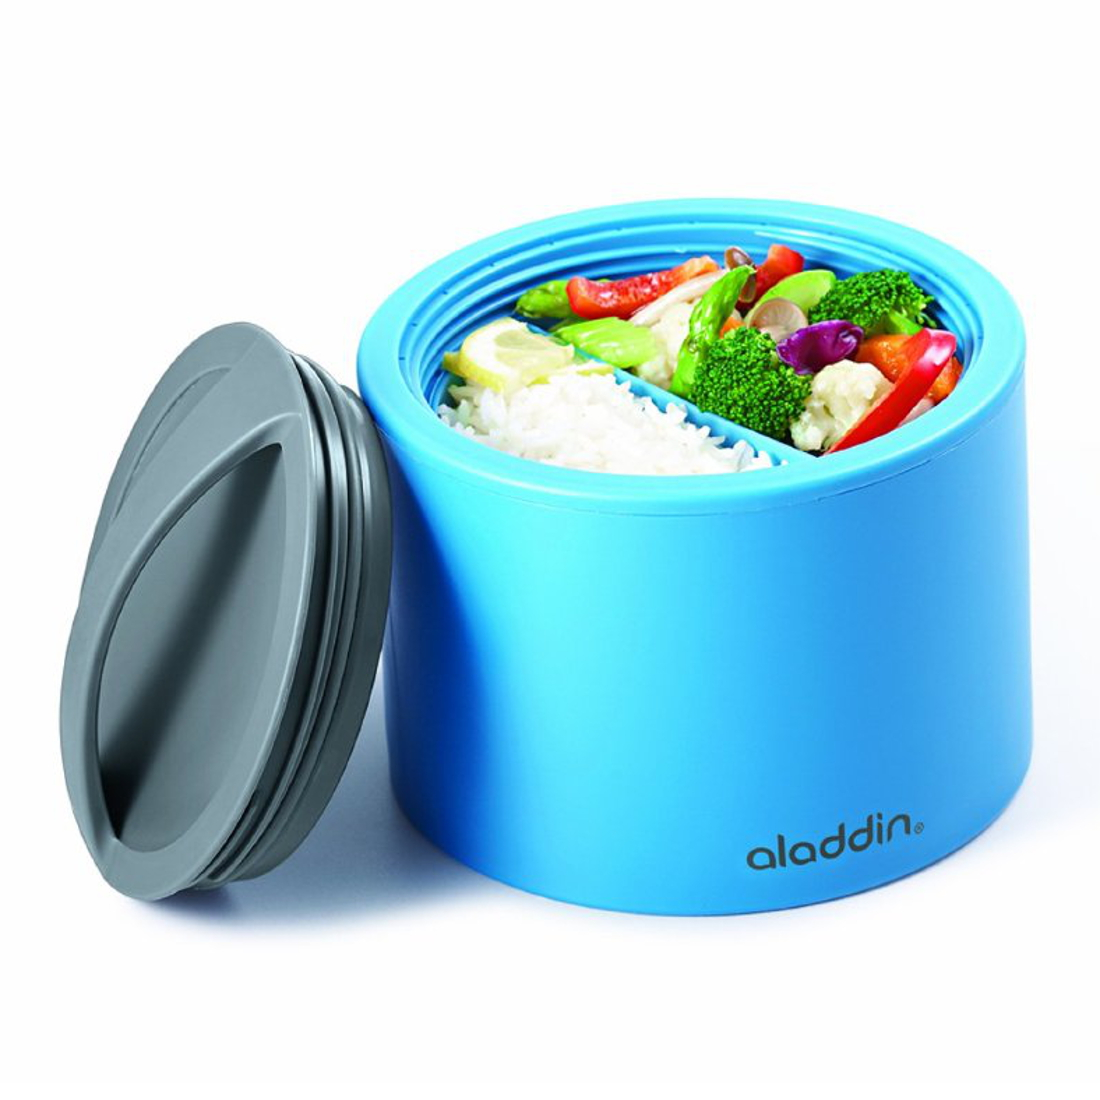 lunch box food work insulated bento aladdin lid design safe blue 0 6l ebay. Black Bedroom Furniture Sets. Home Design Ideas